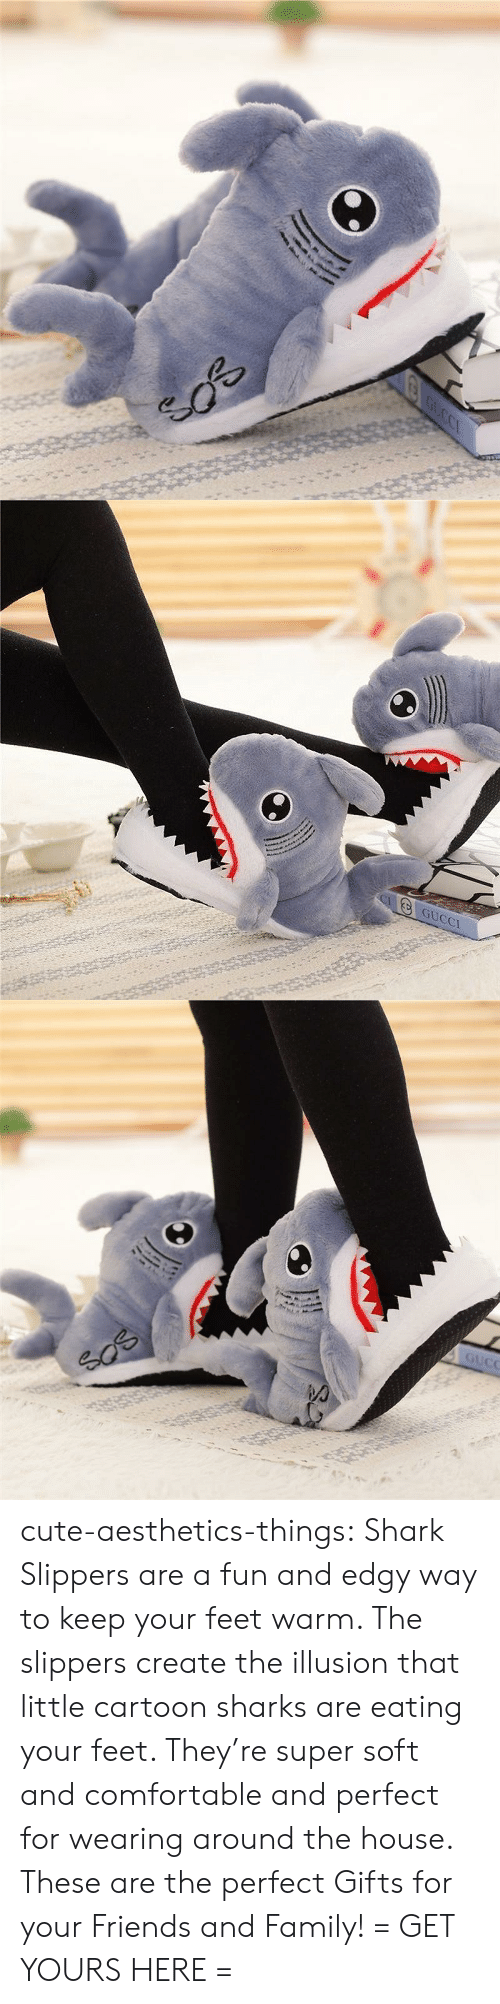 slippers: GUCCI cute-aesthetics-things: Shark Slippers are a fun and edgy way to keep your feet warm. The slippers create the illusion that little cartoon sharks are eating your feet. They're super soft and comfortable and perfect for wearing around the house. These are the perfect Gifts for your Friends and Family! = GET YOURS HERE =